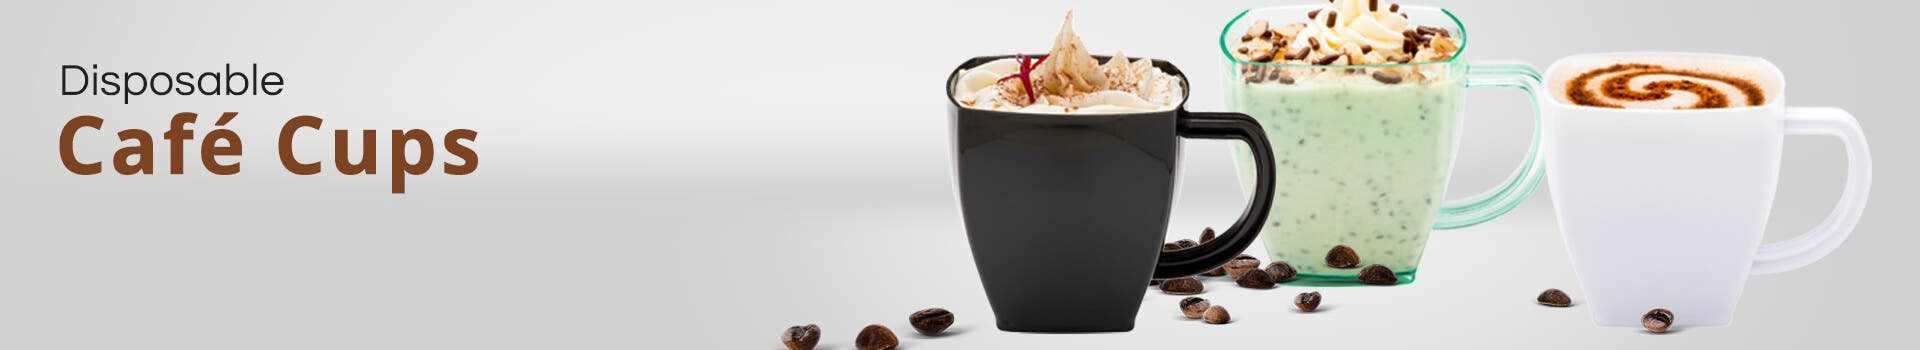 Square Cafe Cups